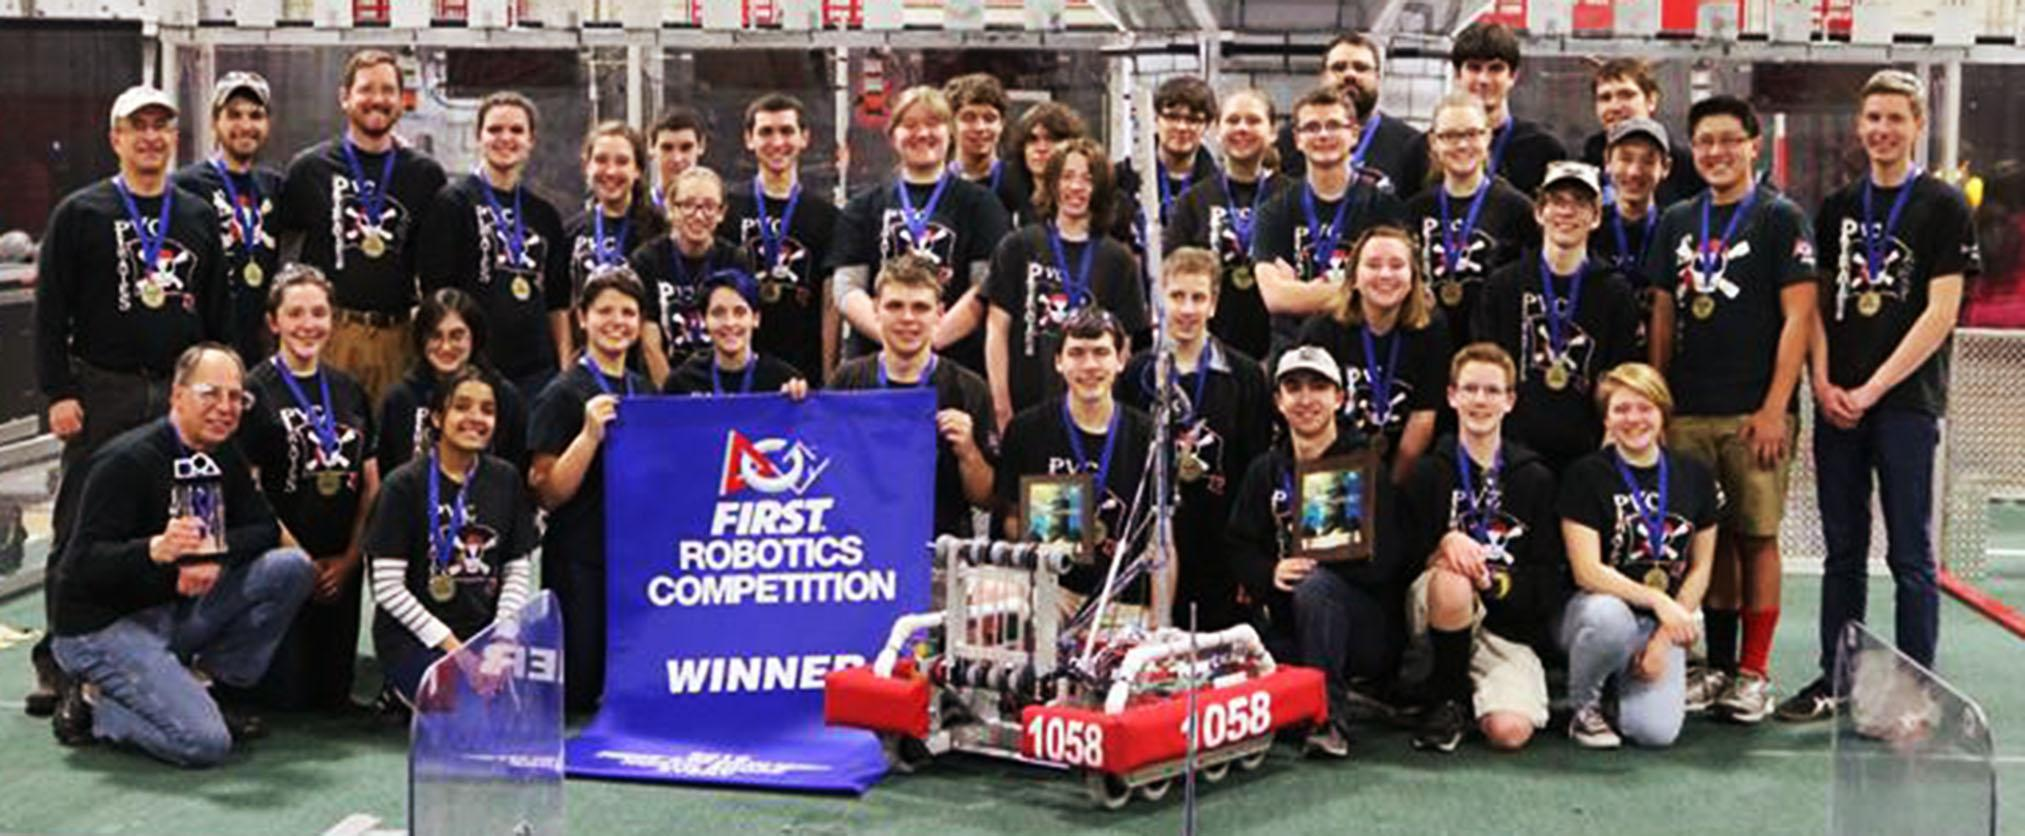 The PVC Pirates are off to a great start this season having already won two events. They head to Boston University for their next competition.